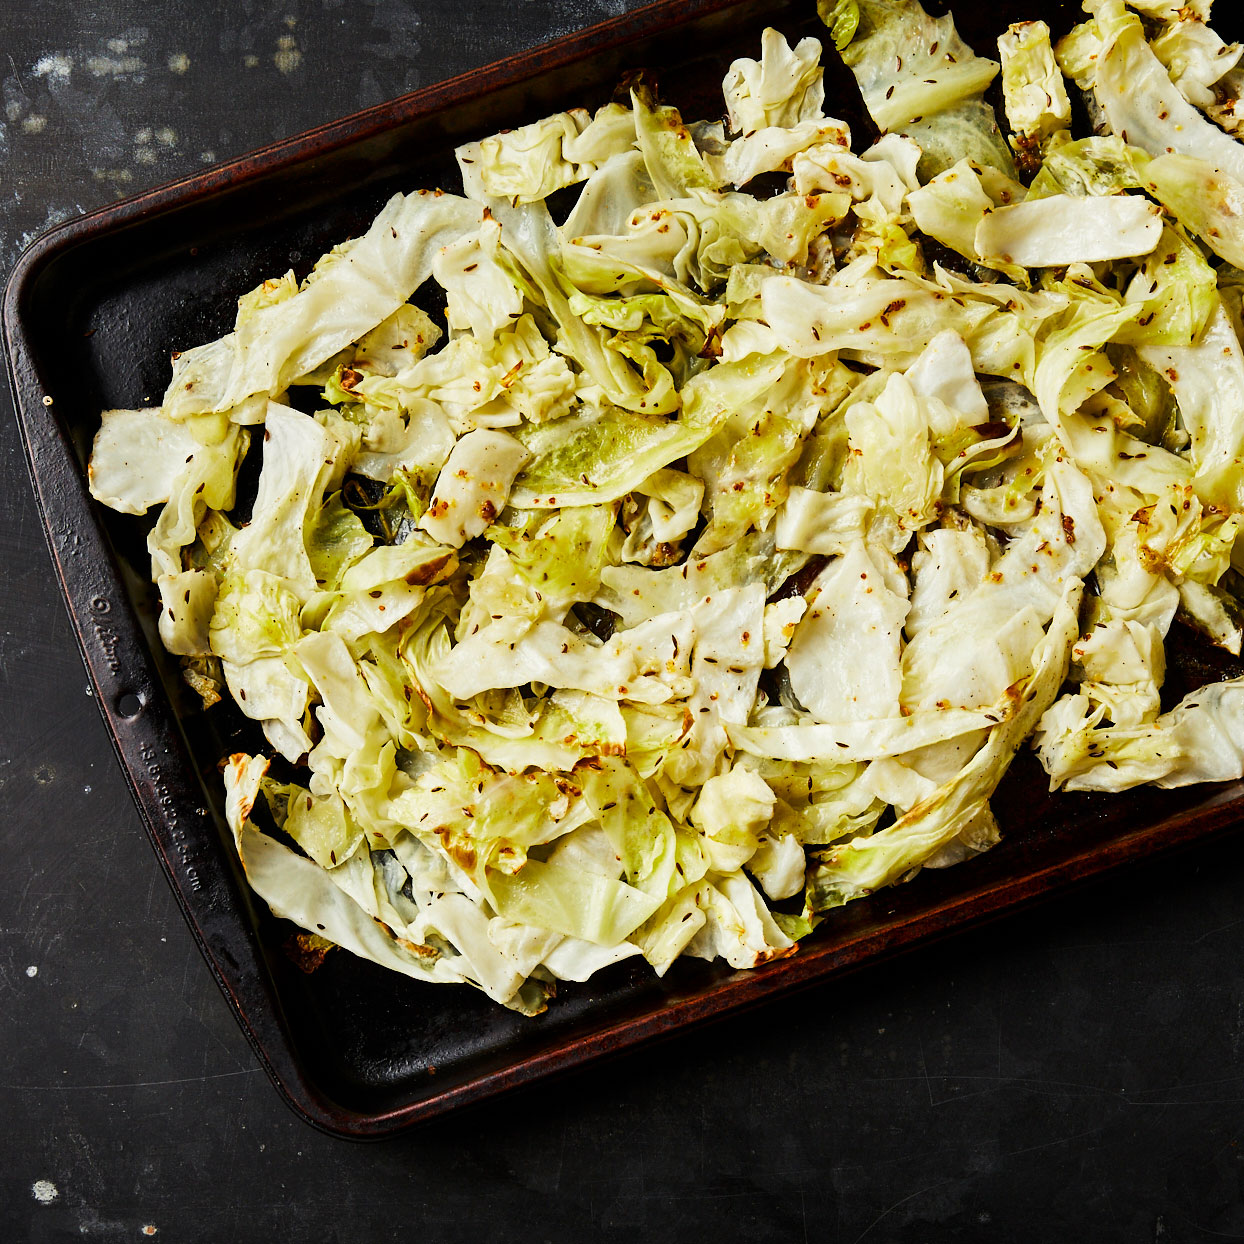 Roasting cabbage brings out its sweet and savory side. Caraway seed is a natural pairing with this cruciferous veggie, and a combination of honey and Dijon mustard deepens the flavor. Serve as a side to pork chops, burgers or roasted chicken. Source: EatingWell.com, July 2020